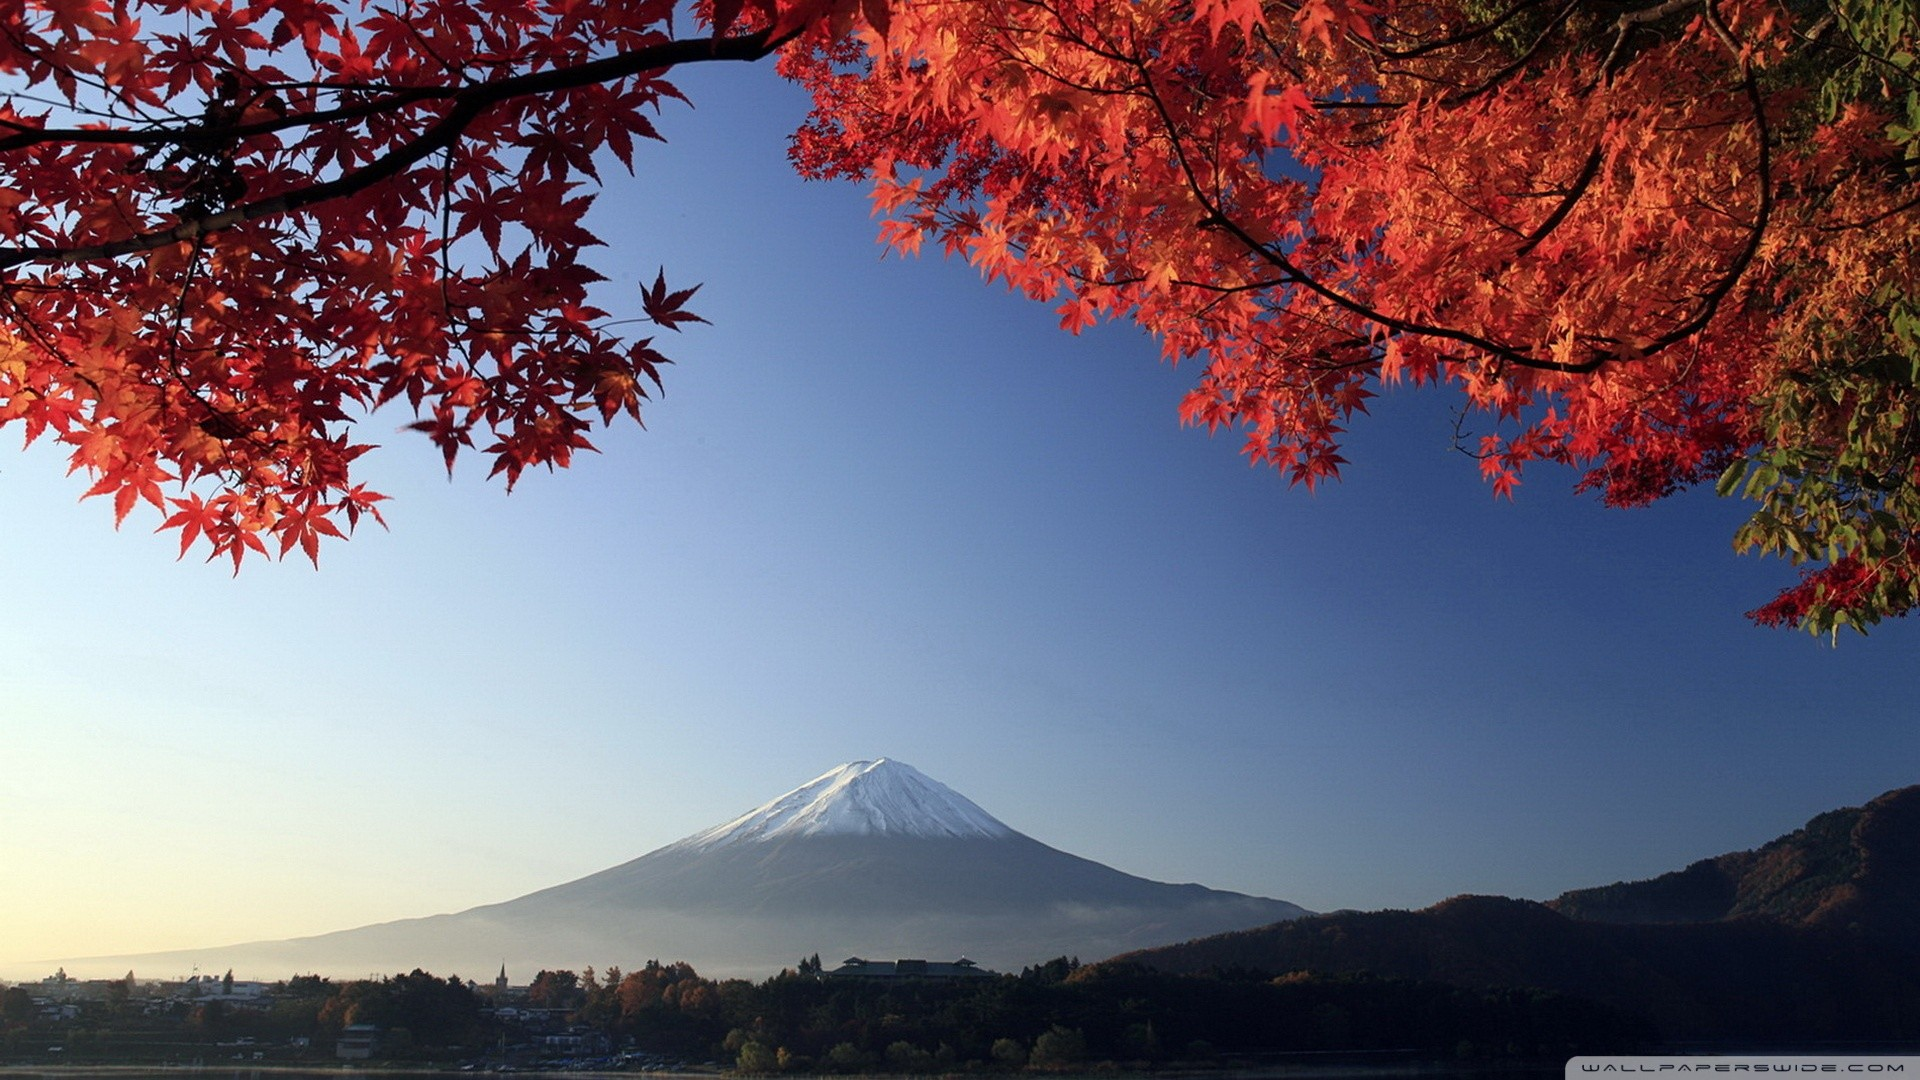 Japan High Quality Wallpapers Gallery, FBD.3612260